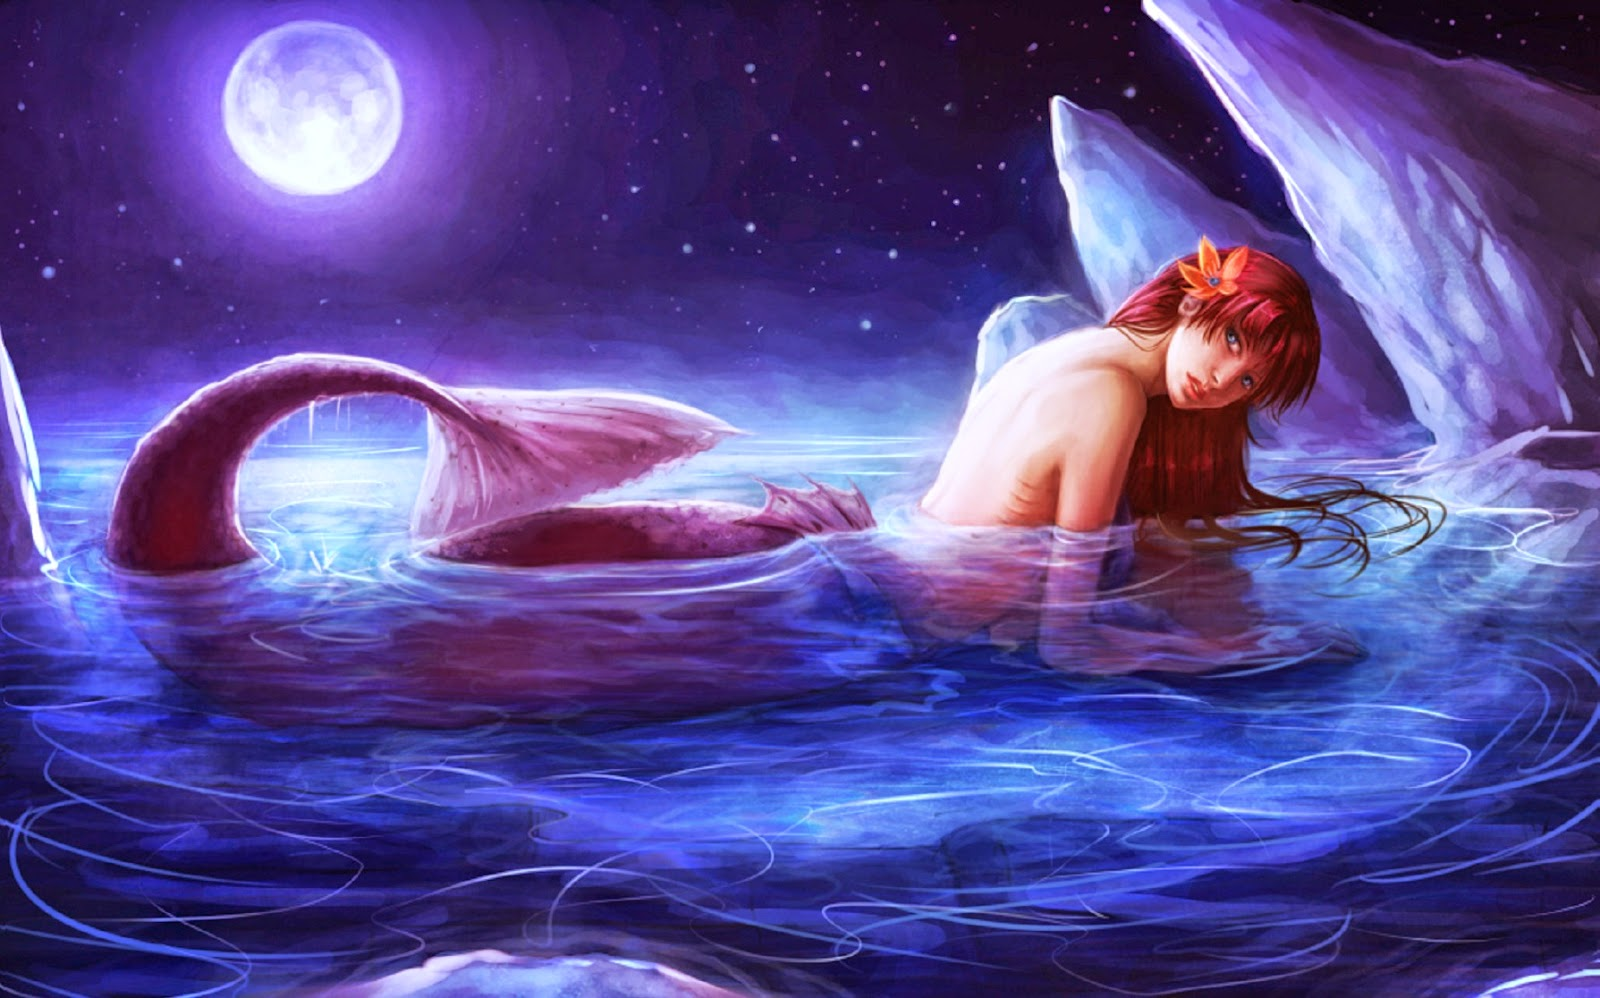 mermaid-above-water-at-moon-light-fantasy-world.jpg